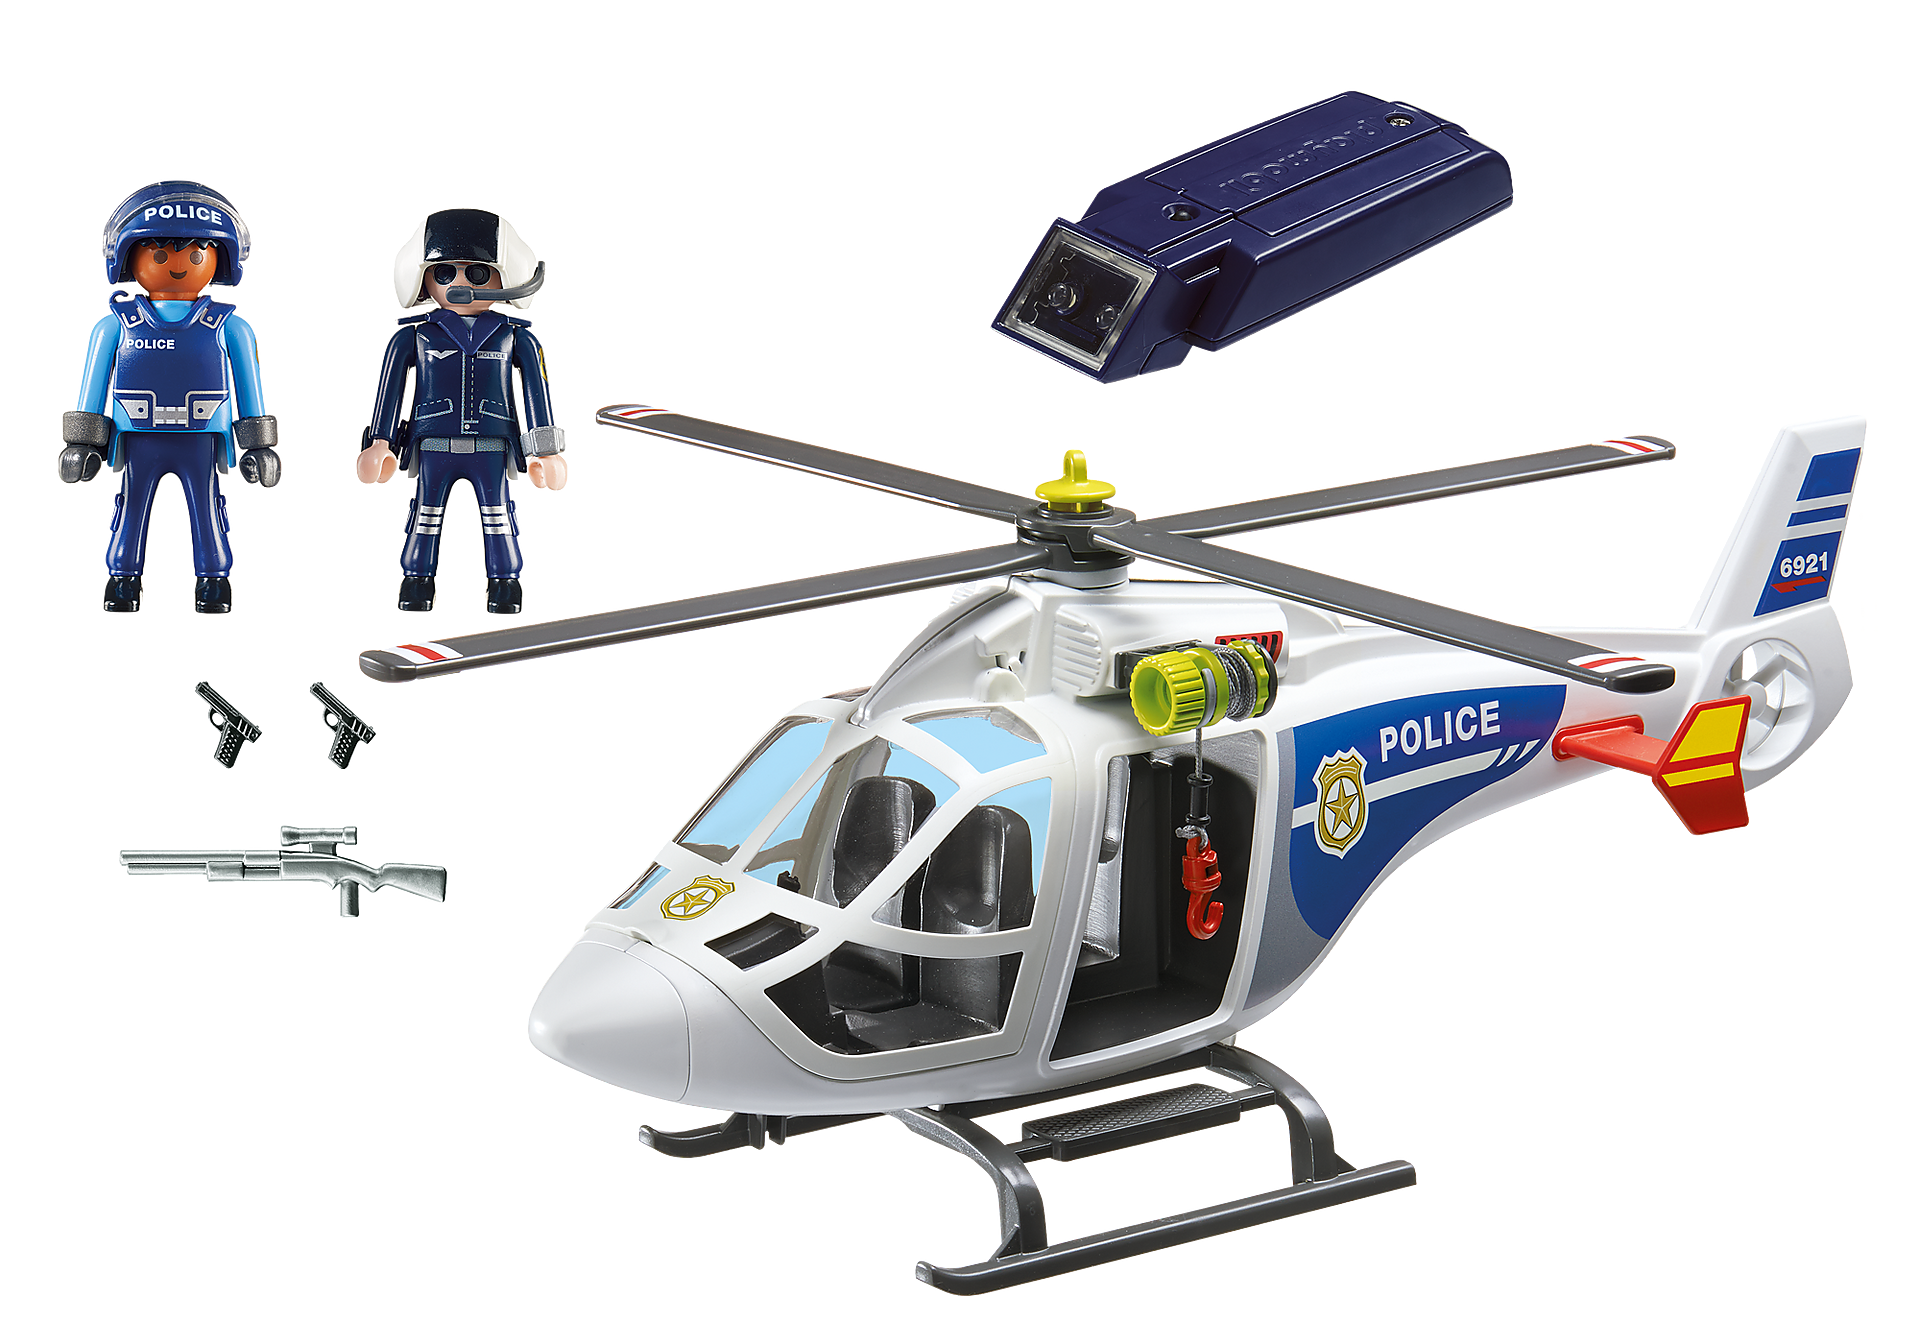 http://media.playmobil.com/i/playmobil/6921_product_box_back/Int. Polizei-Helikopter mit LED-Suchscheinwerfer